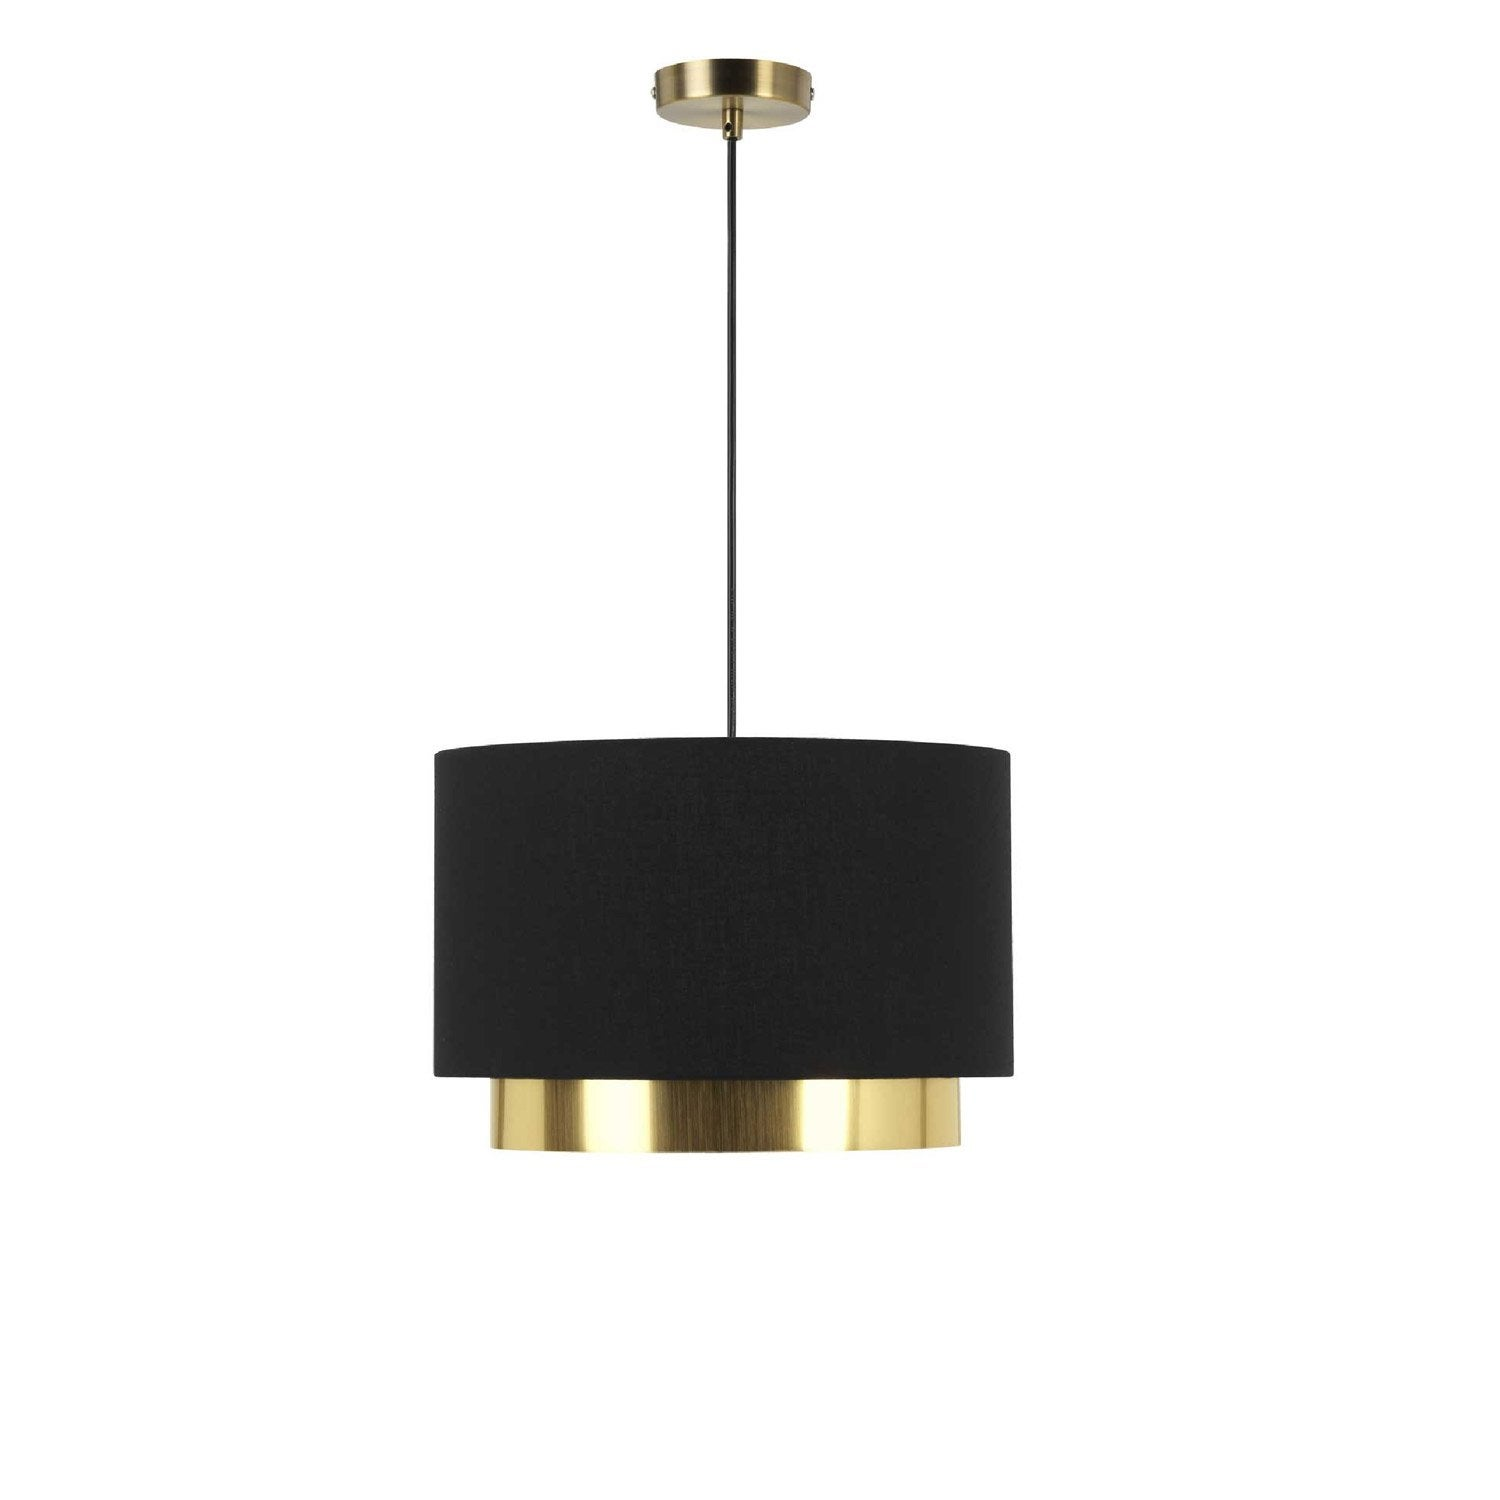 Suspension design dana tissus noir et dor 1 x 23 w mathias leroy merlin - Suspension salon design ...